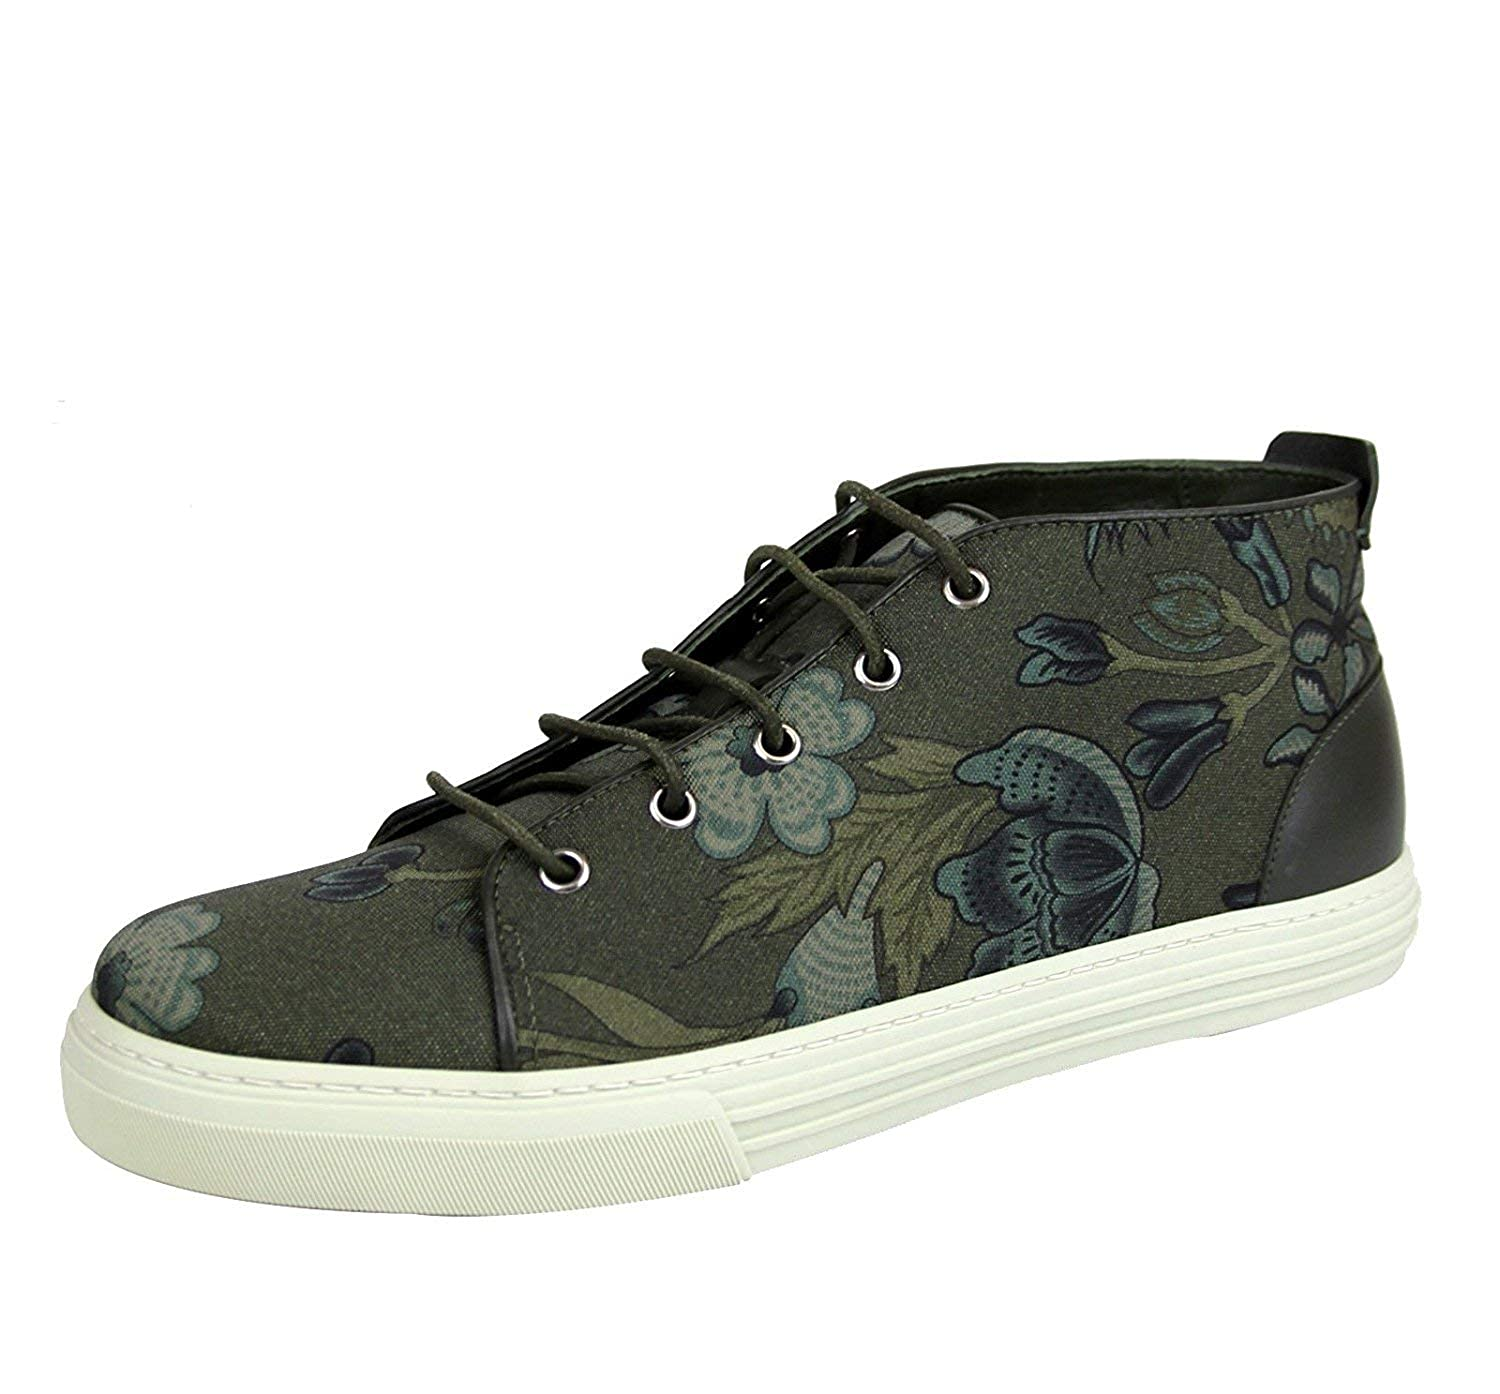 041d45df231 Amazon.com  Gucci Men s Green Lace-up Floral Fabric Fashion Sneakers 342048  3364  Shoes